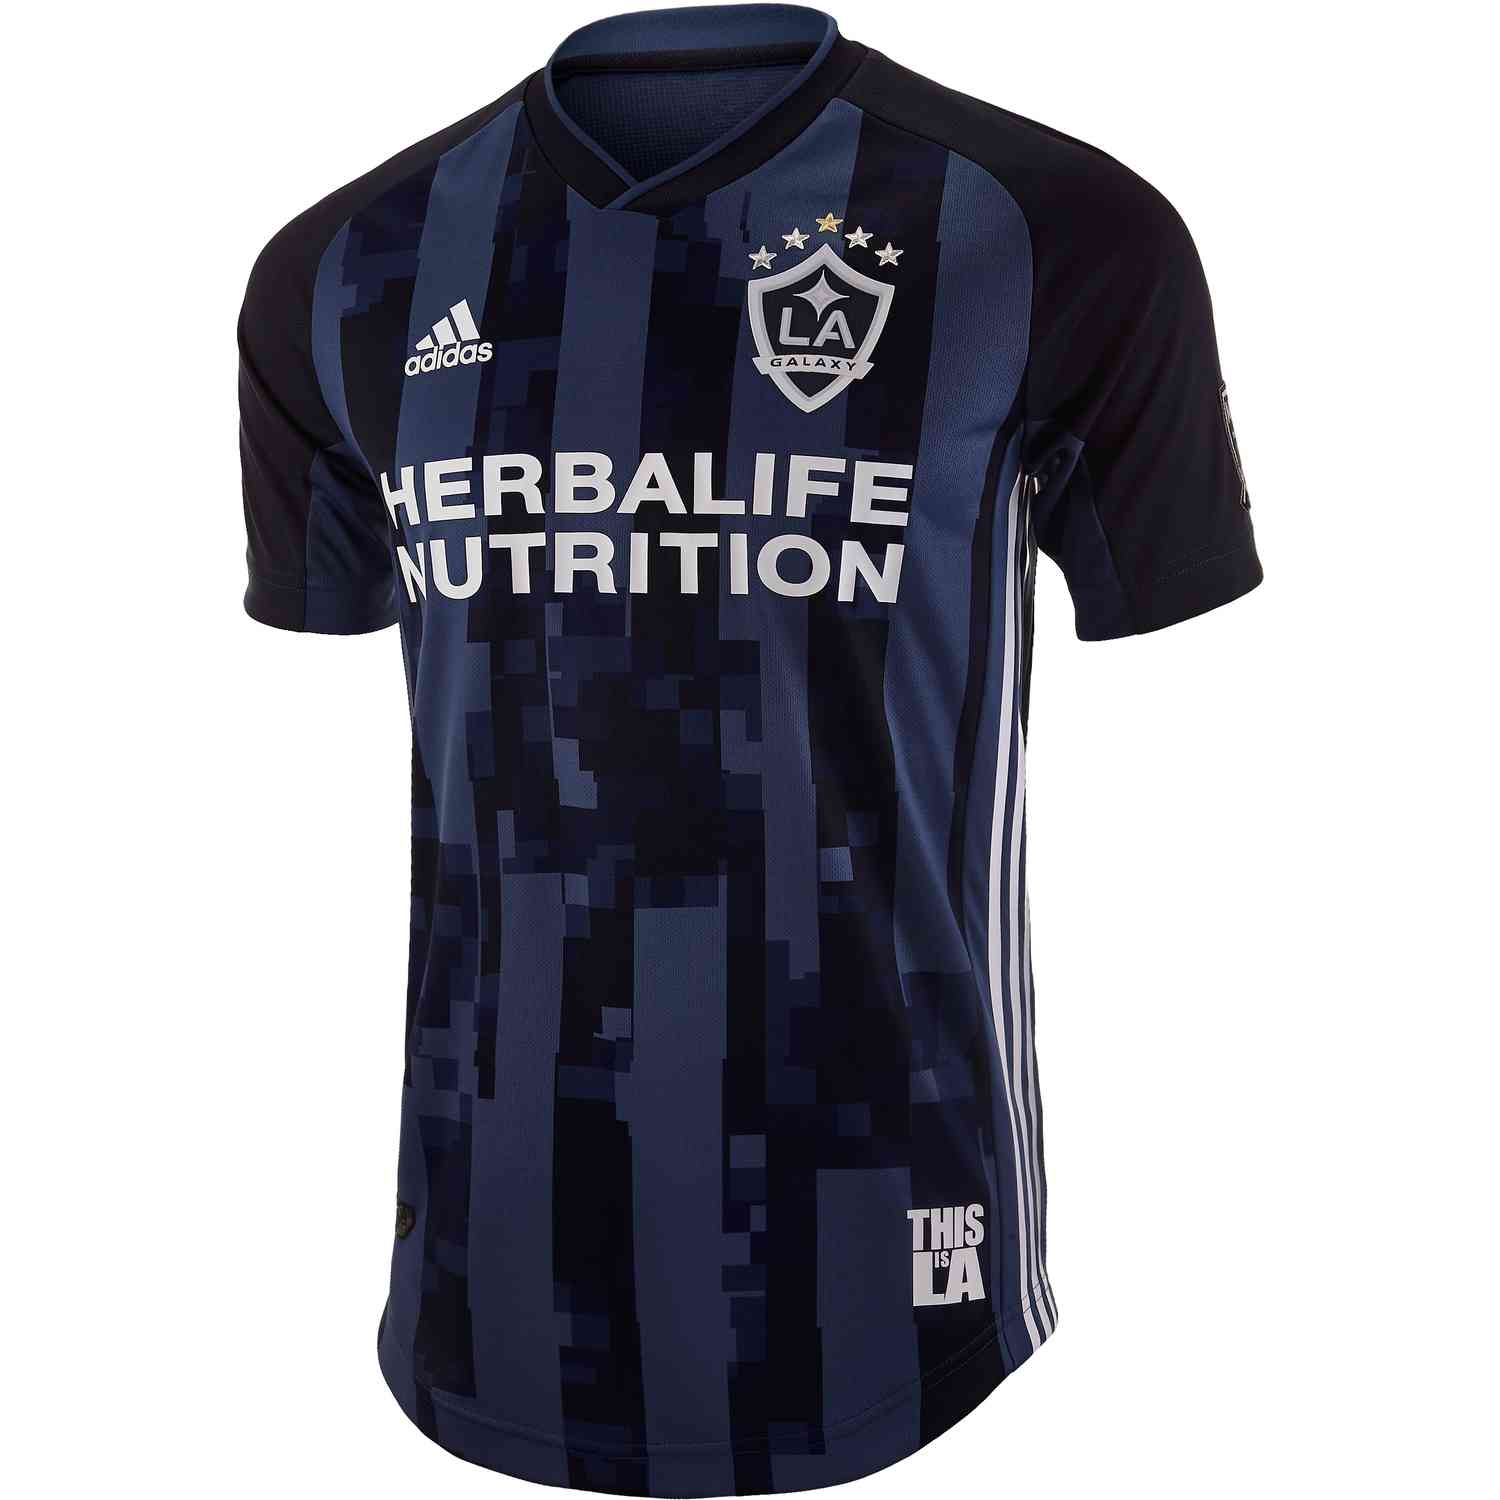 new concept ccd9c 15135 adidas LA Galaxy Away Authentic Jersey - 2019